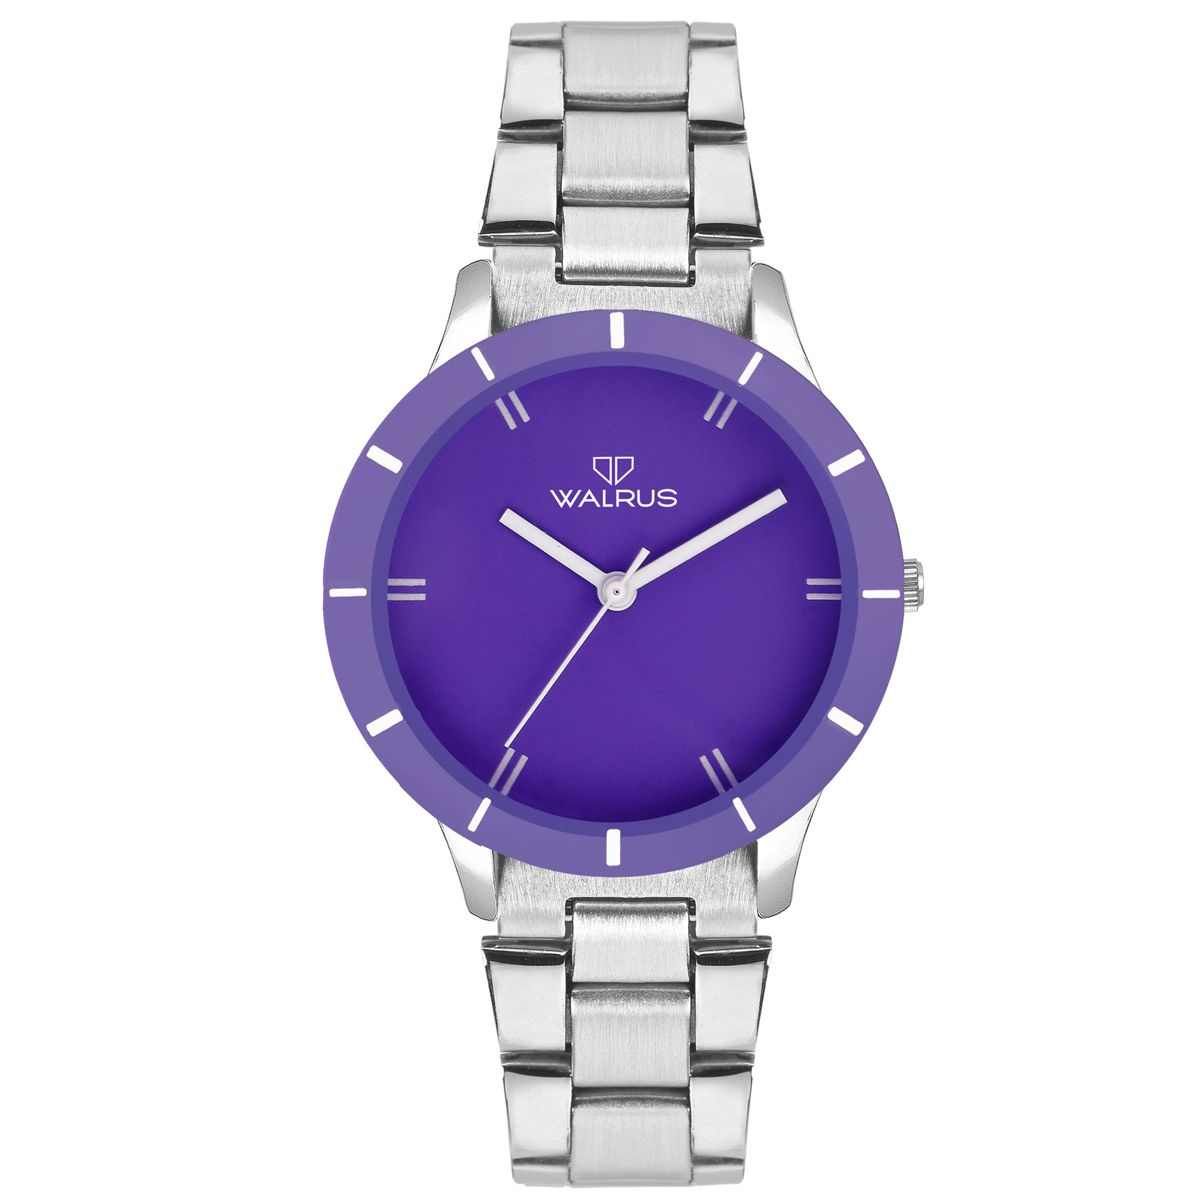 Walrus Eve Chain Purple Color Analog Women Watch -WWW-Eve -CH-140707